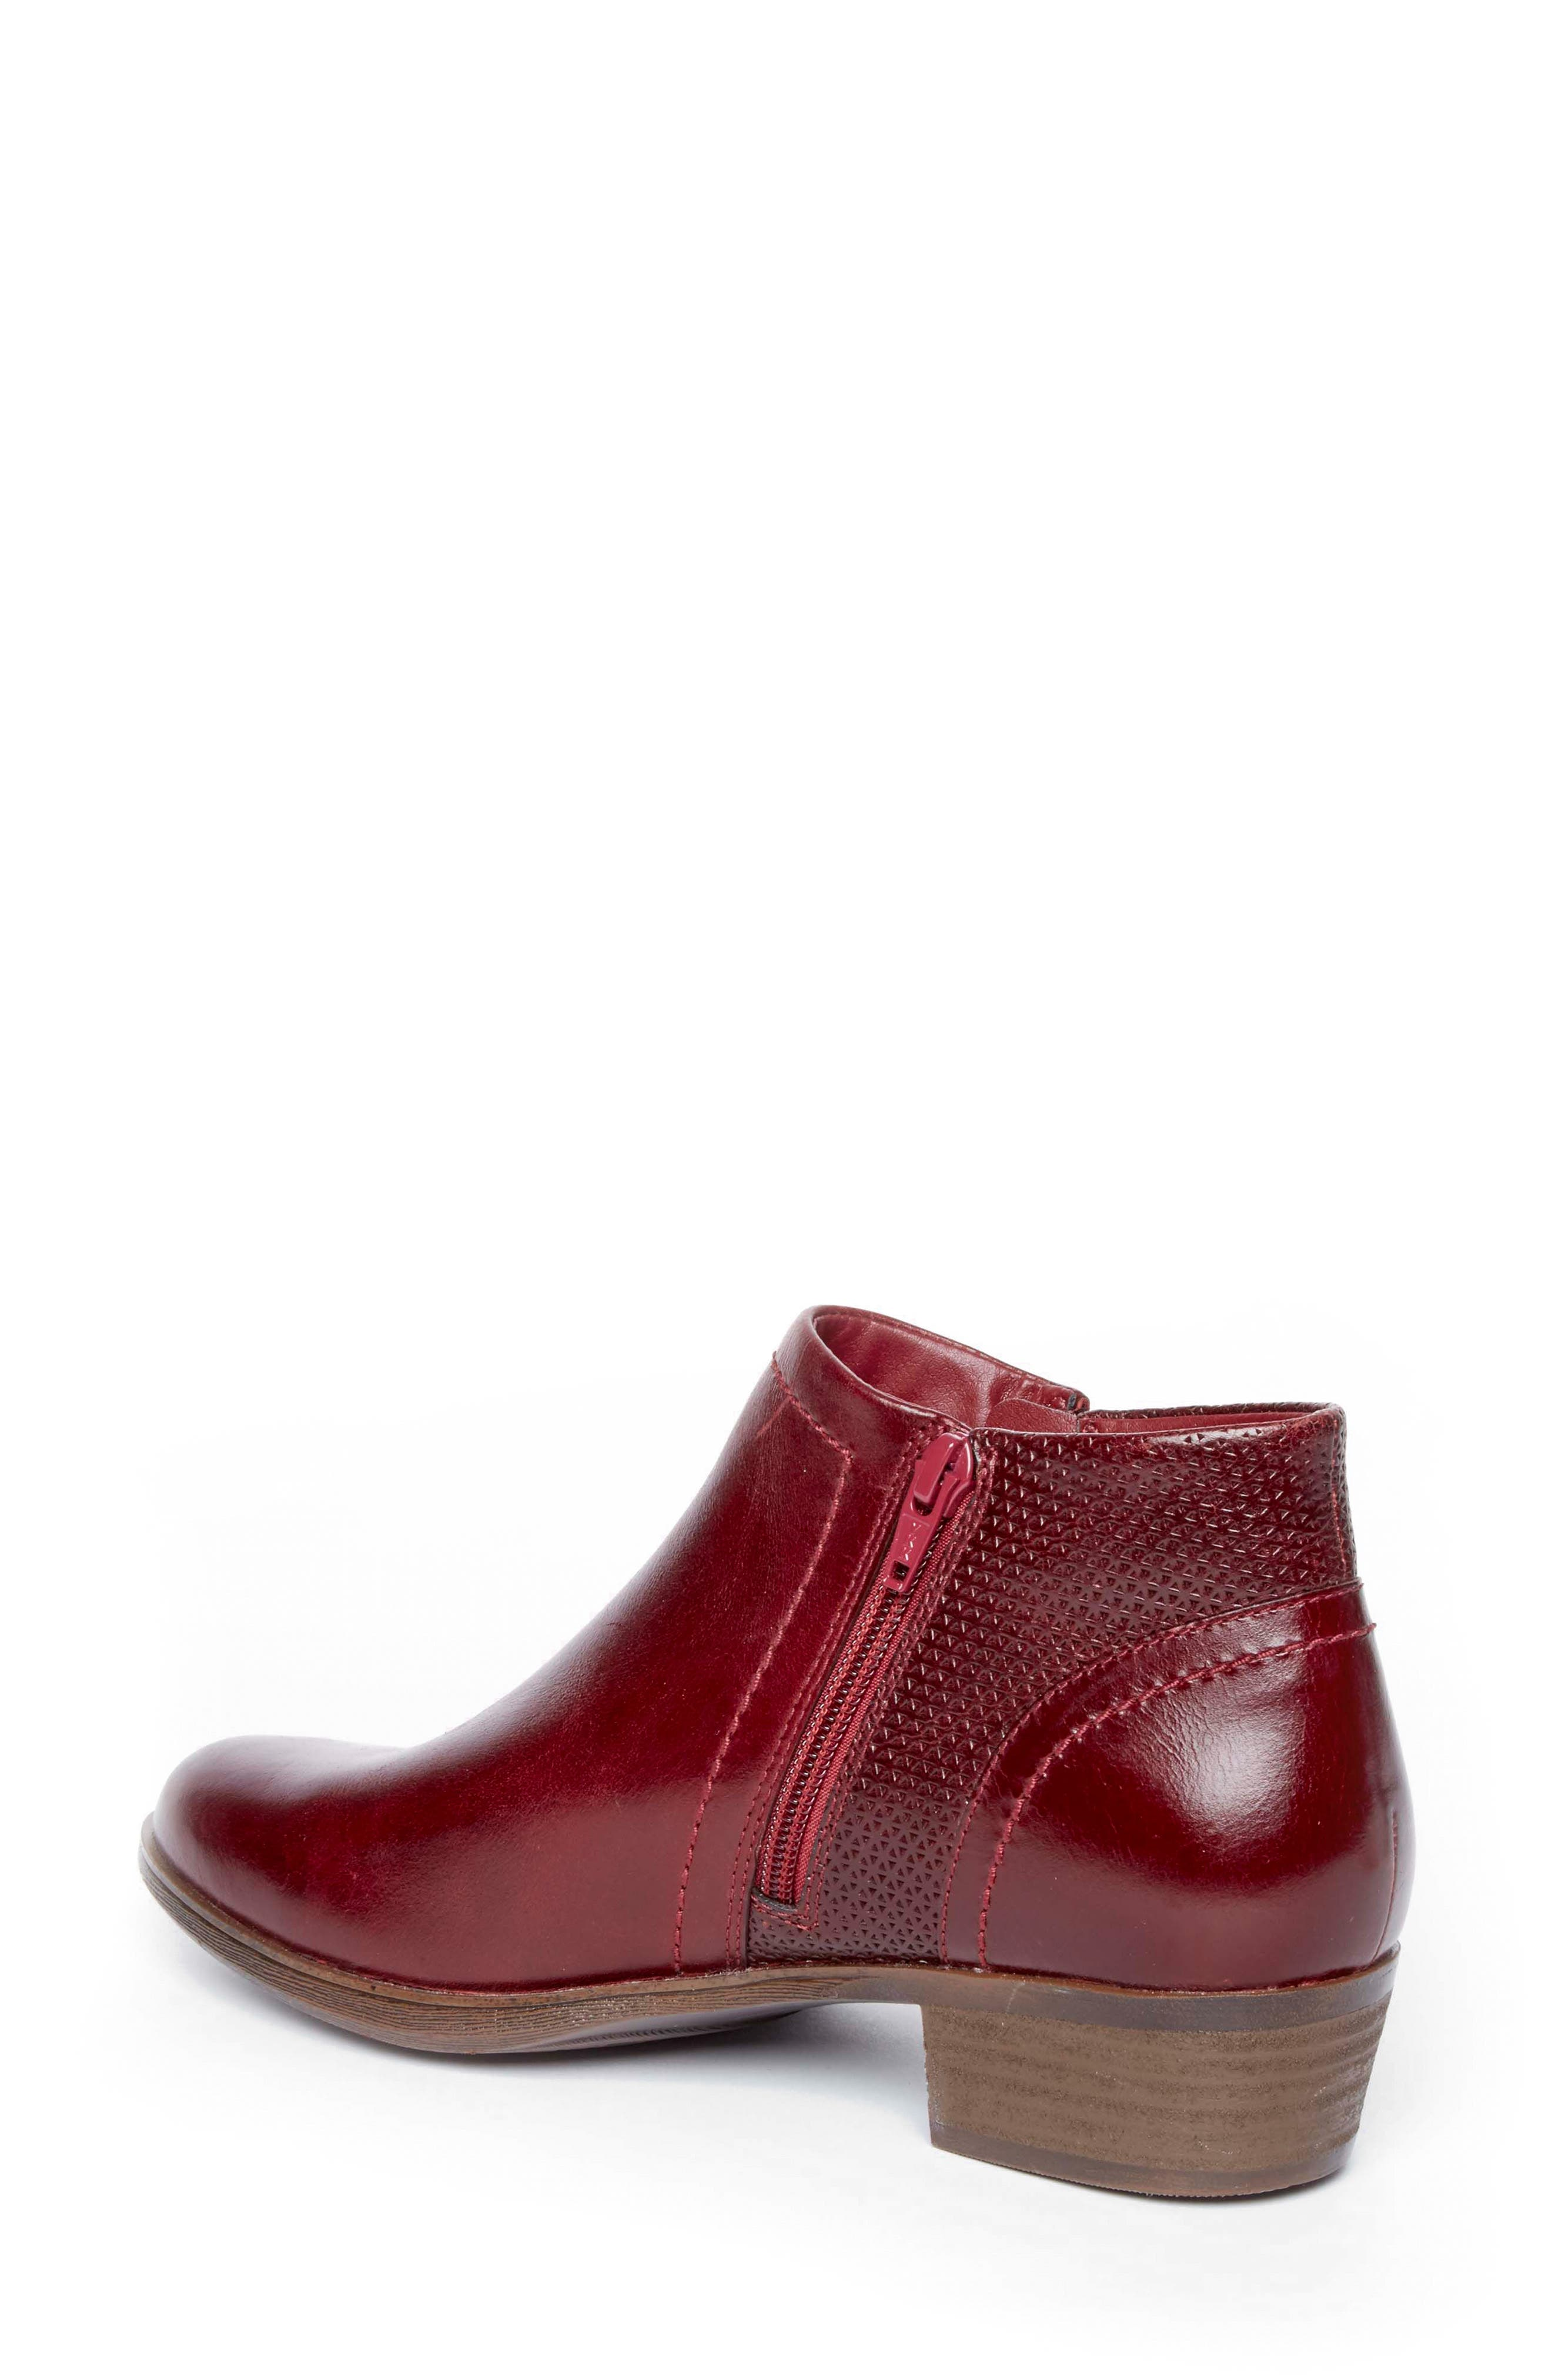 Oliana Bootie,                             Alternate thumbnail 2, color,                             Inferno Leather